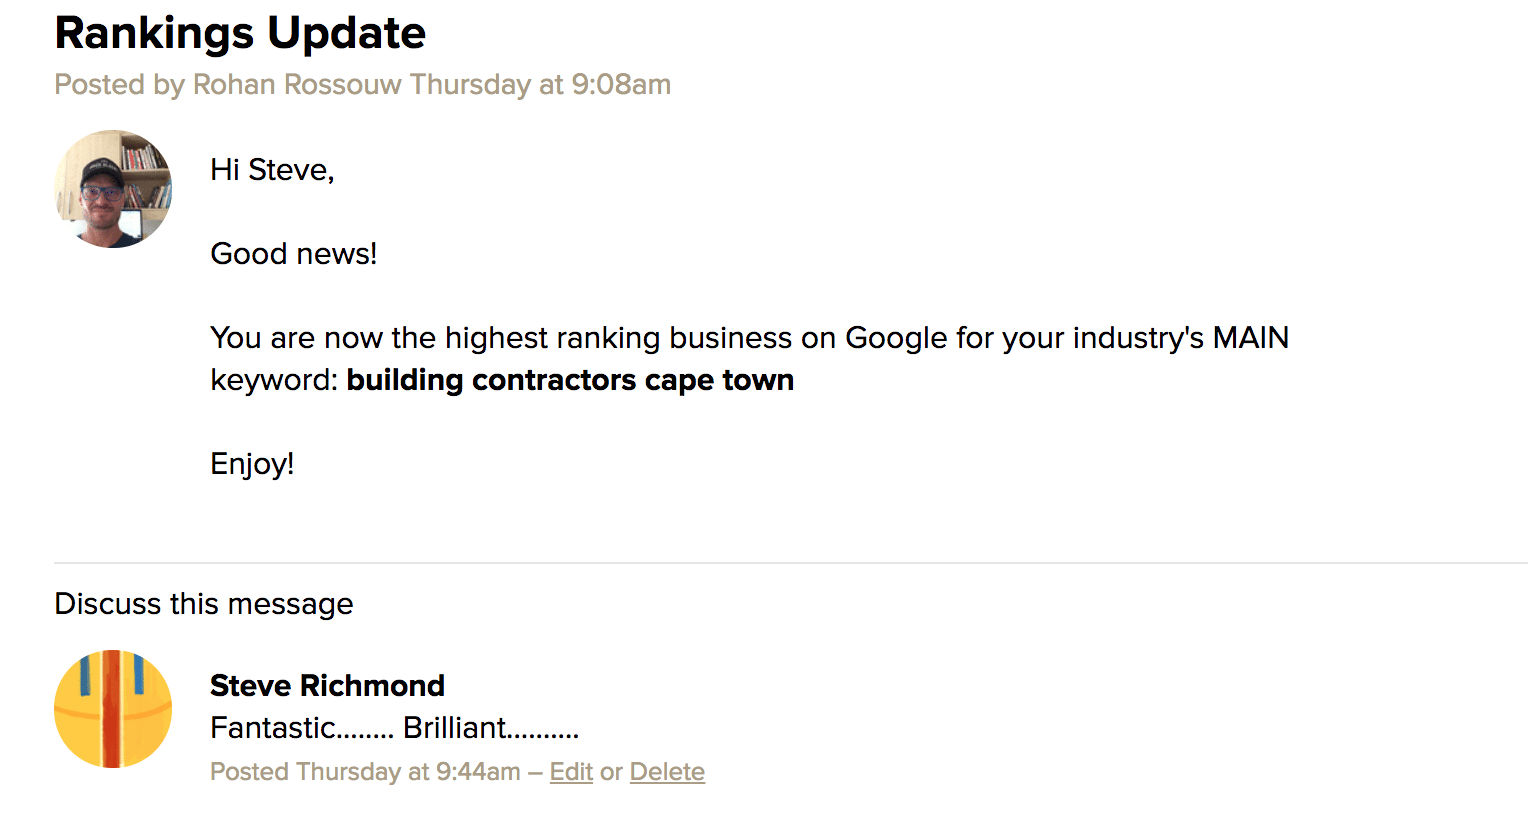 Another Top Position - Building Contractors In Cape Town